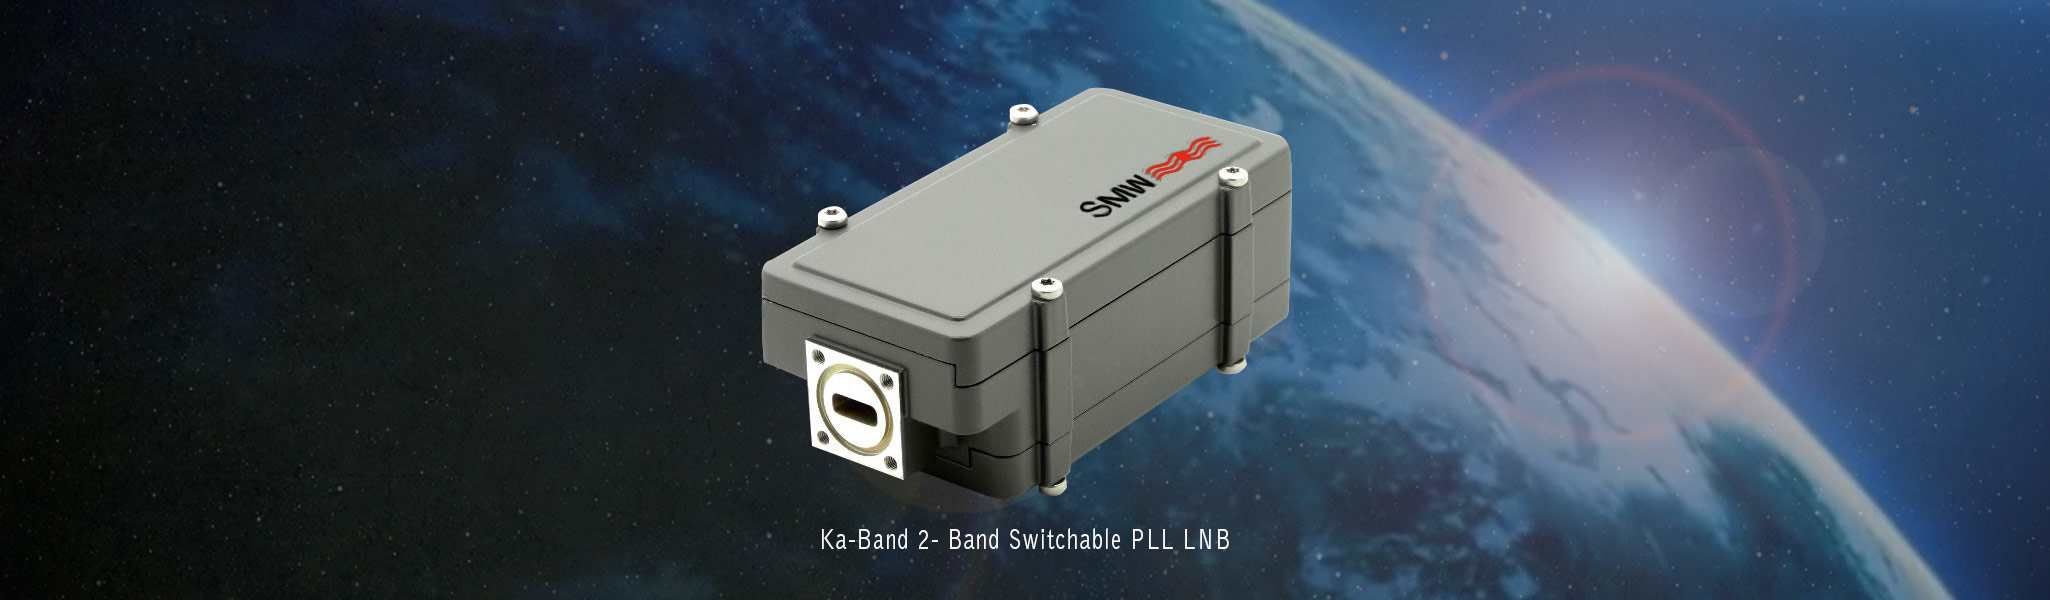 ka_band2bandswitchable